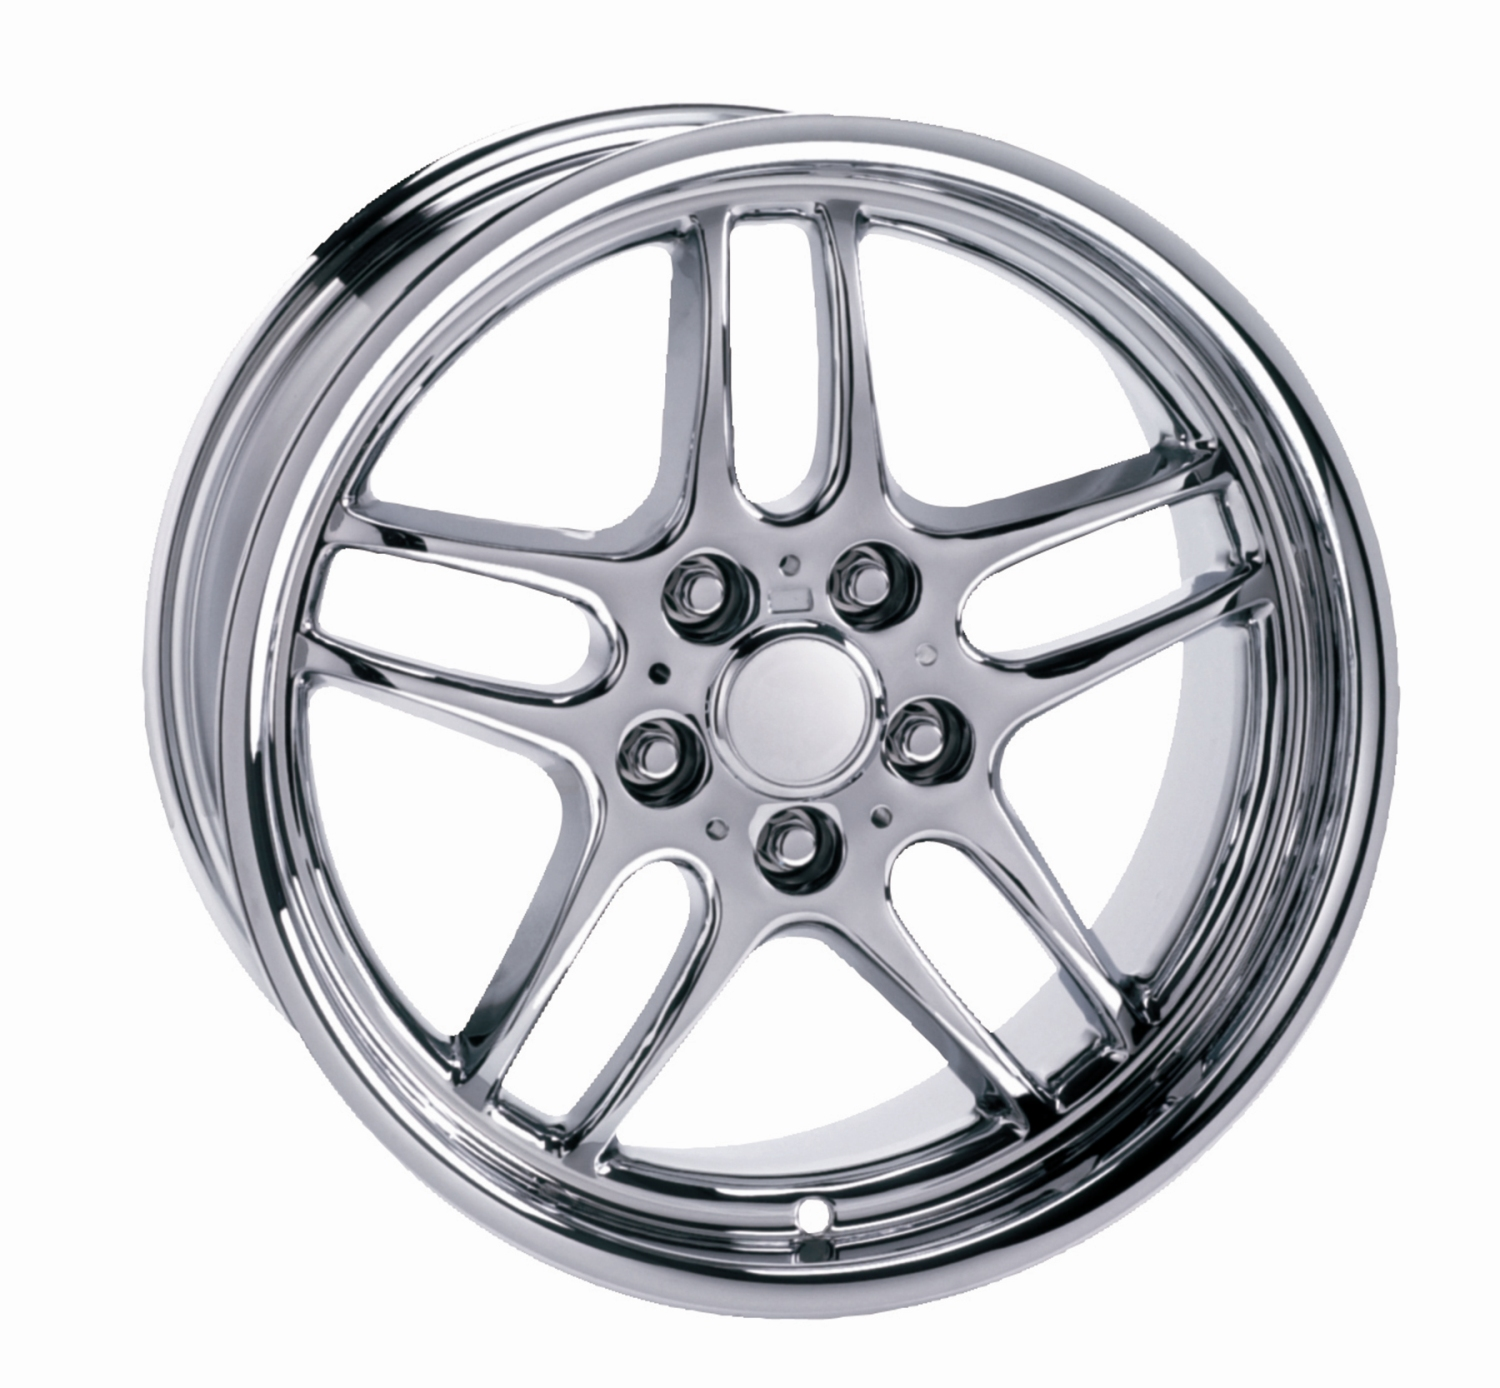 Bmw 5 Series 1988-2010 18x9.5 5x120 +25 - Parallel Spoke Wheel - Chrome With Cap